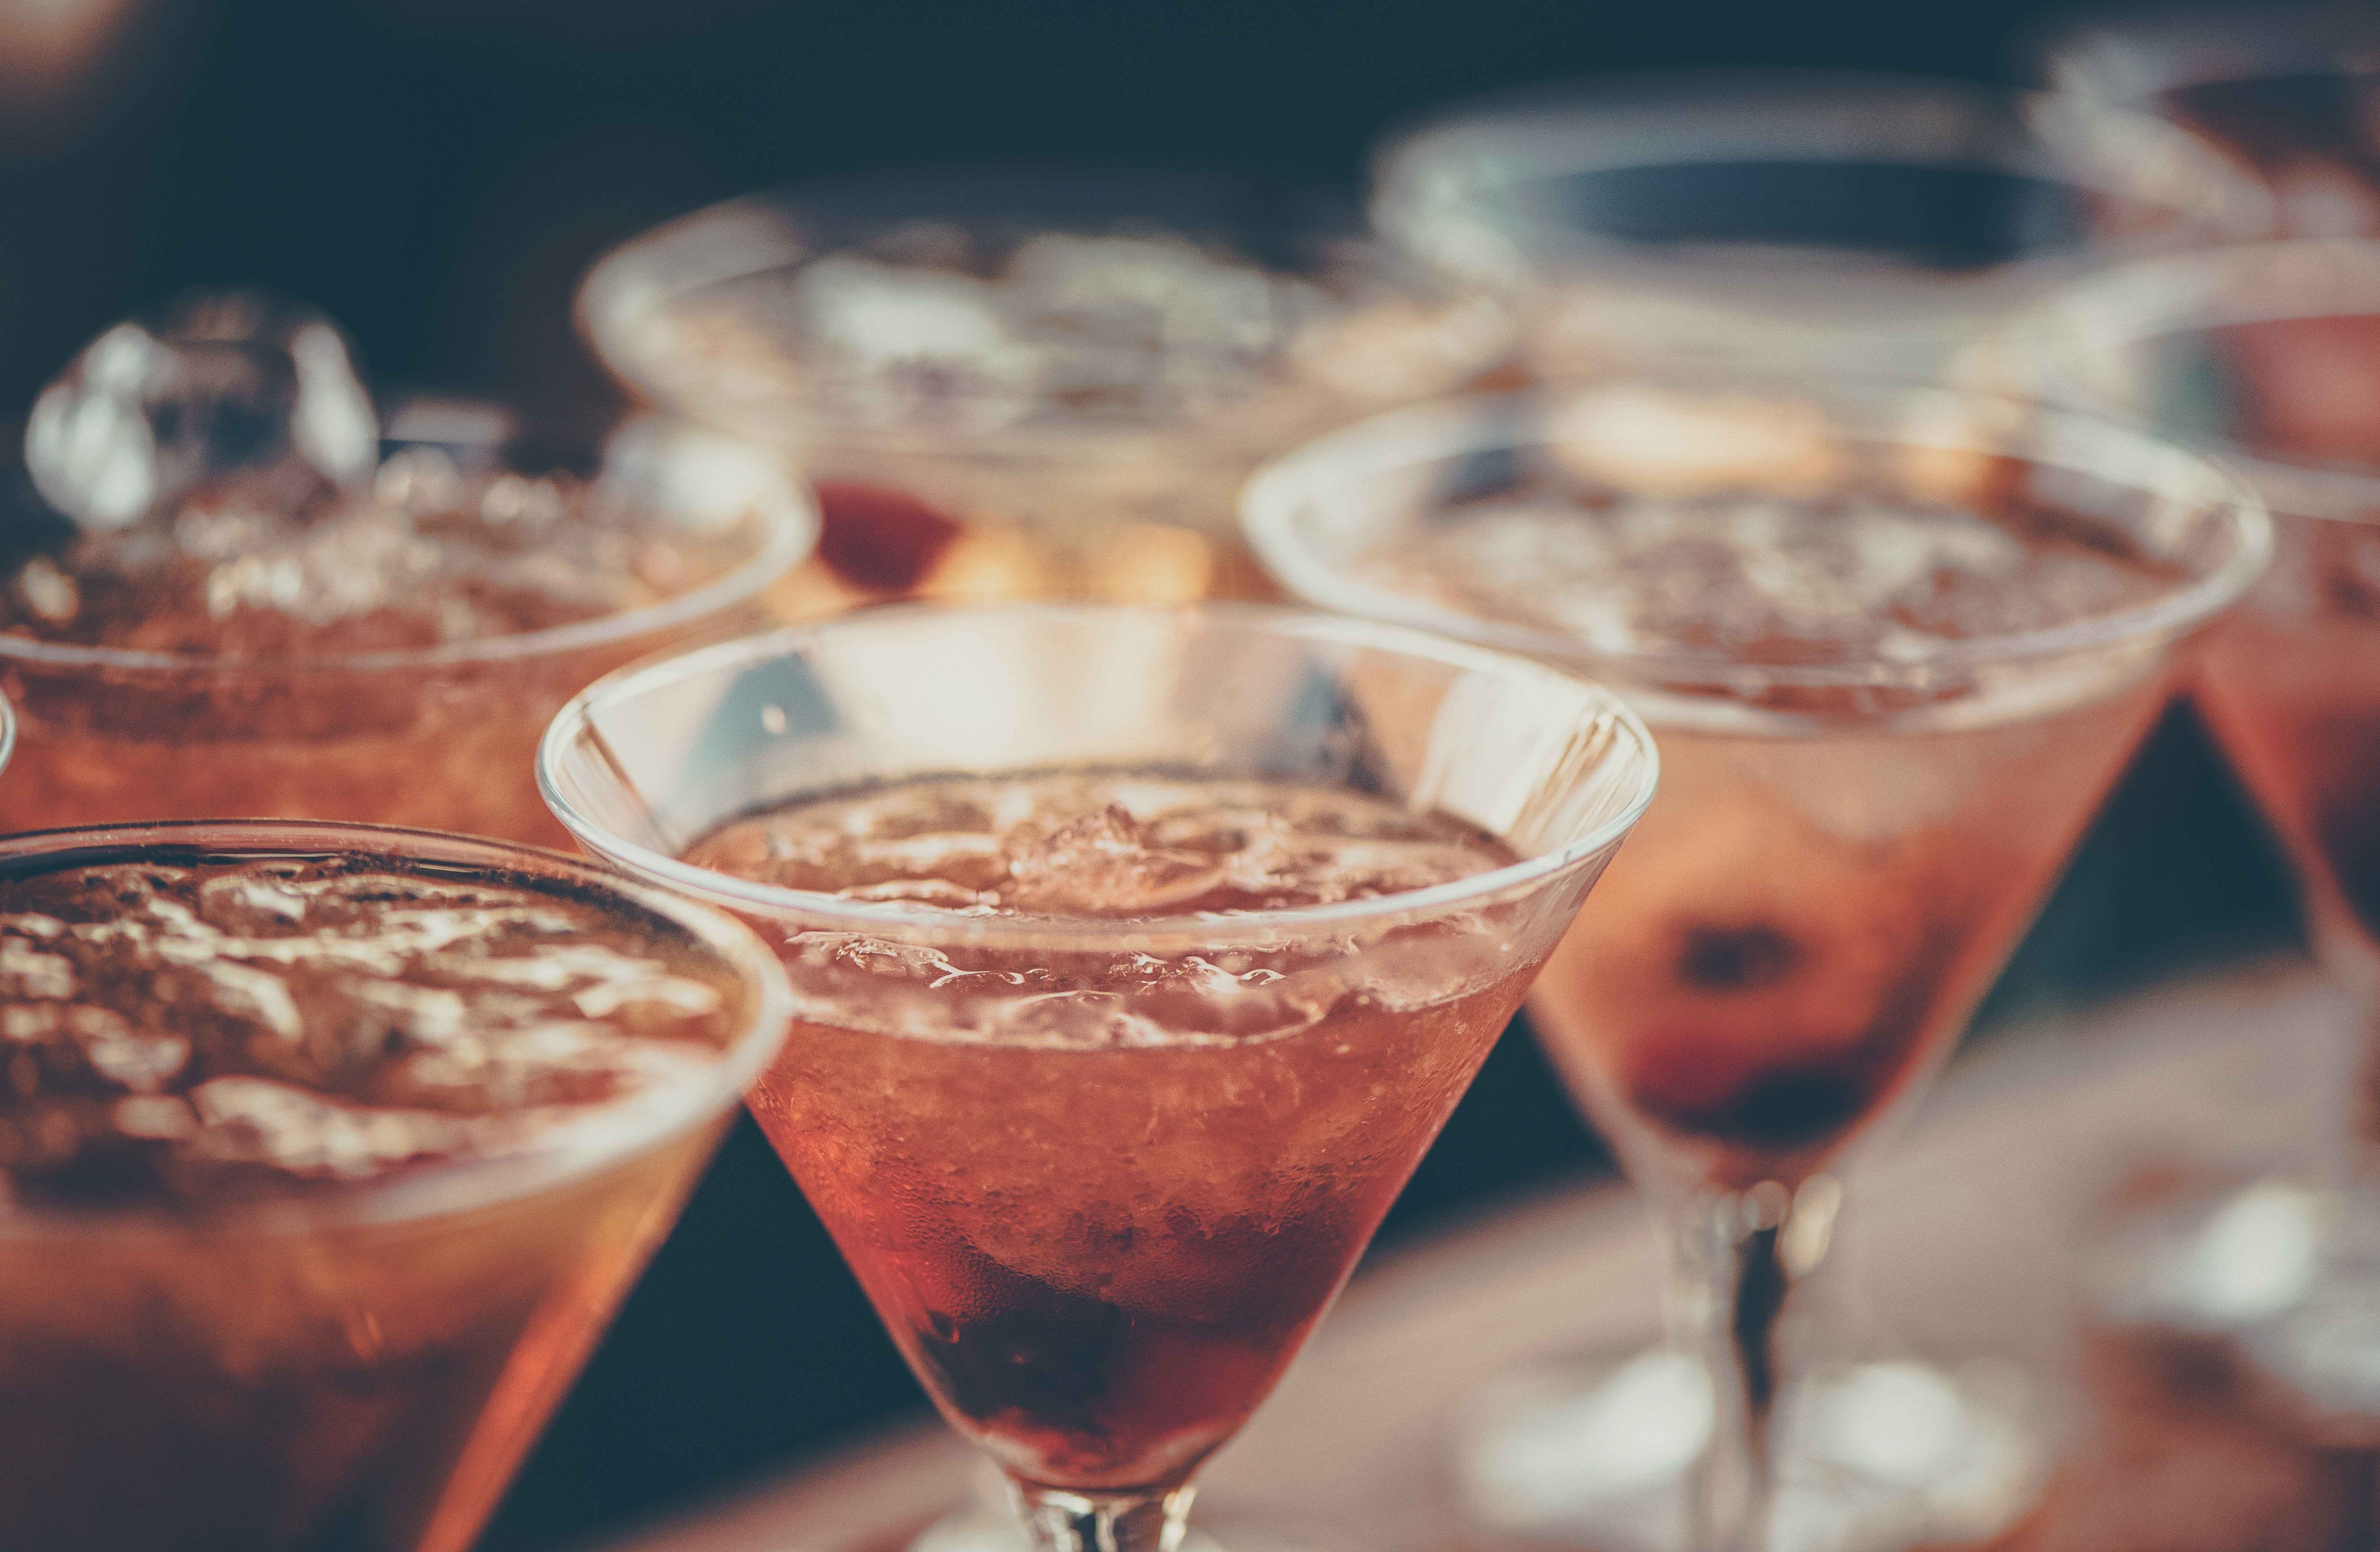 Kelly and Betty had a conversation over drinks   Source: Pexels